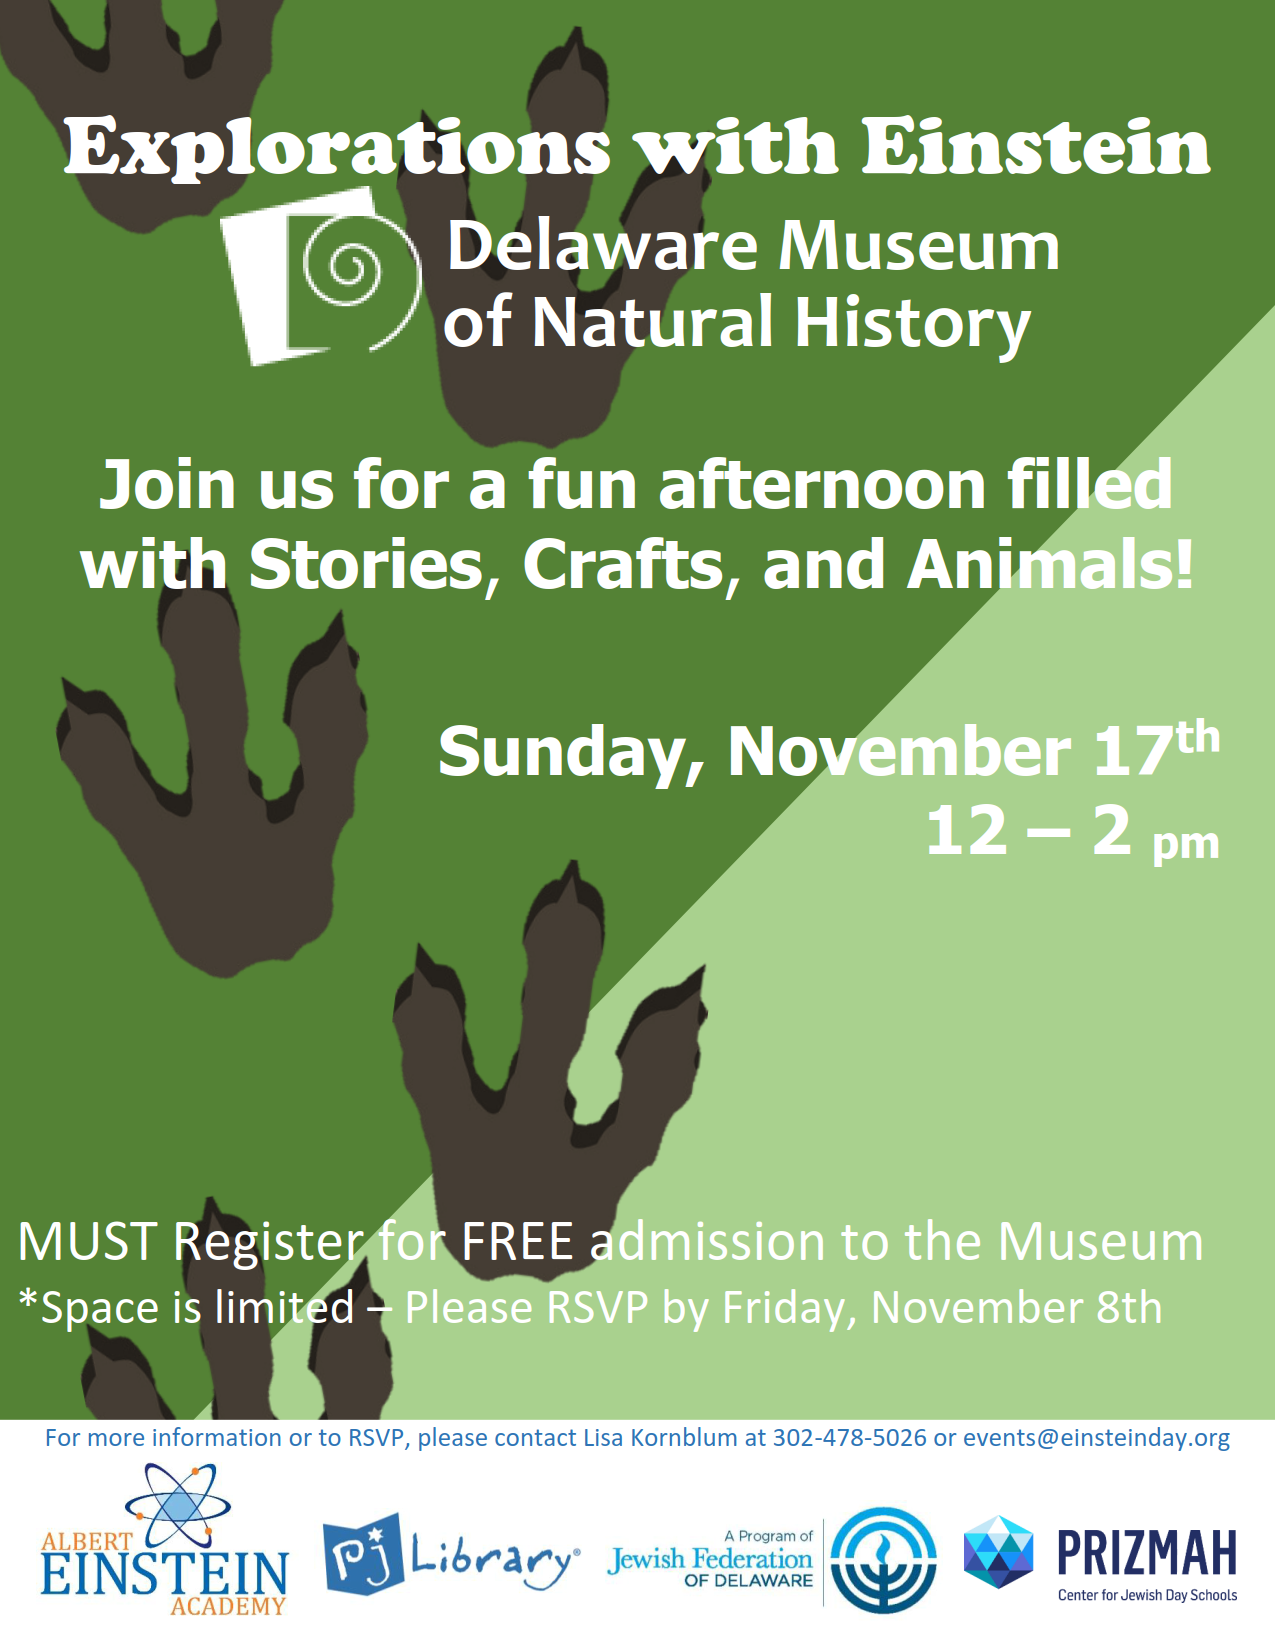 Explore with Einstein at the Delaware Museum of Natural History